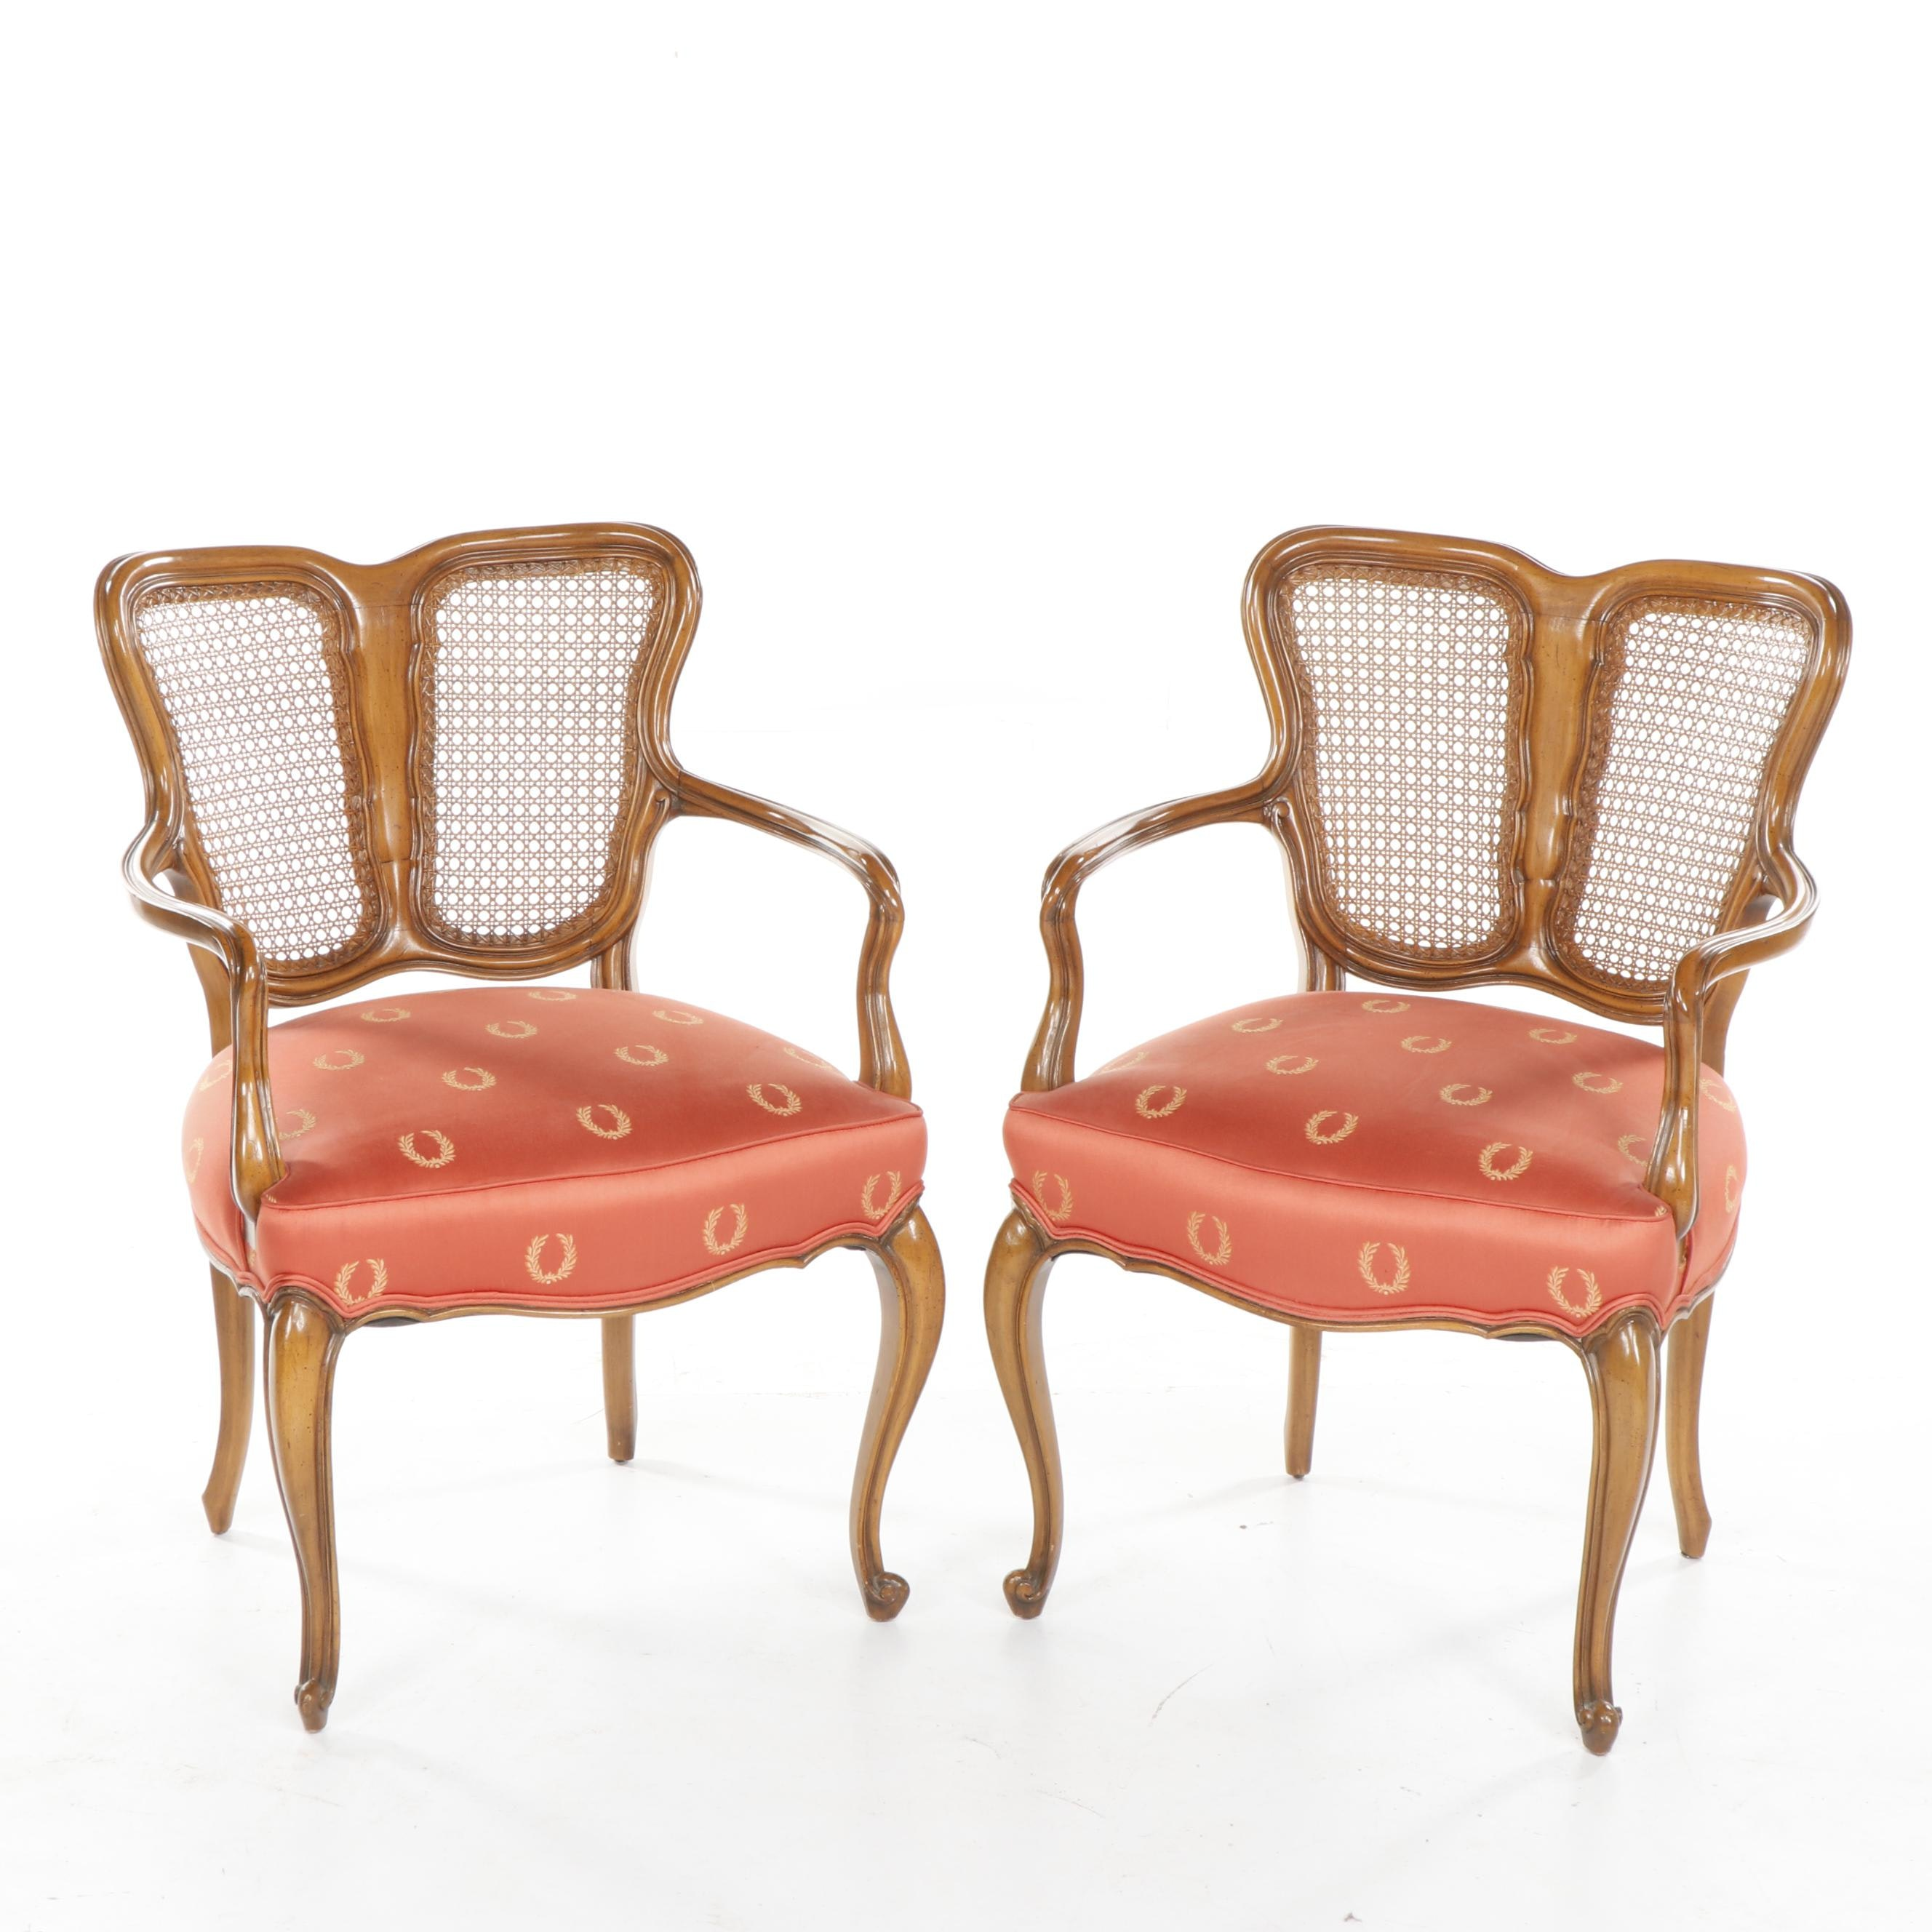 Pair of Louis XIV Revival Style Upholstered Armchairs, Vintage